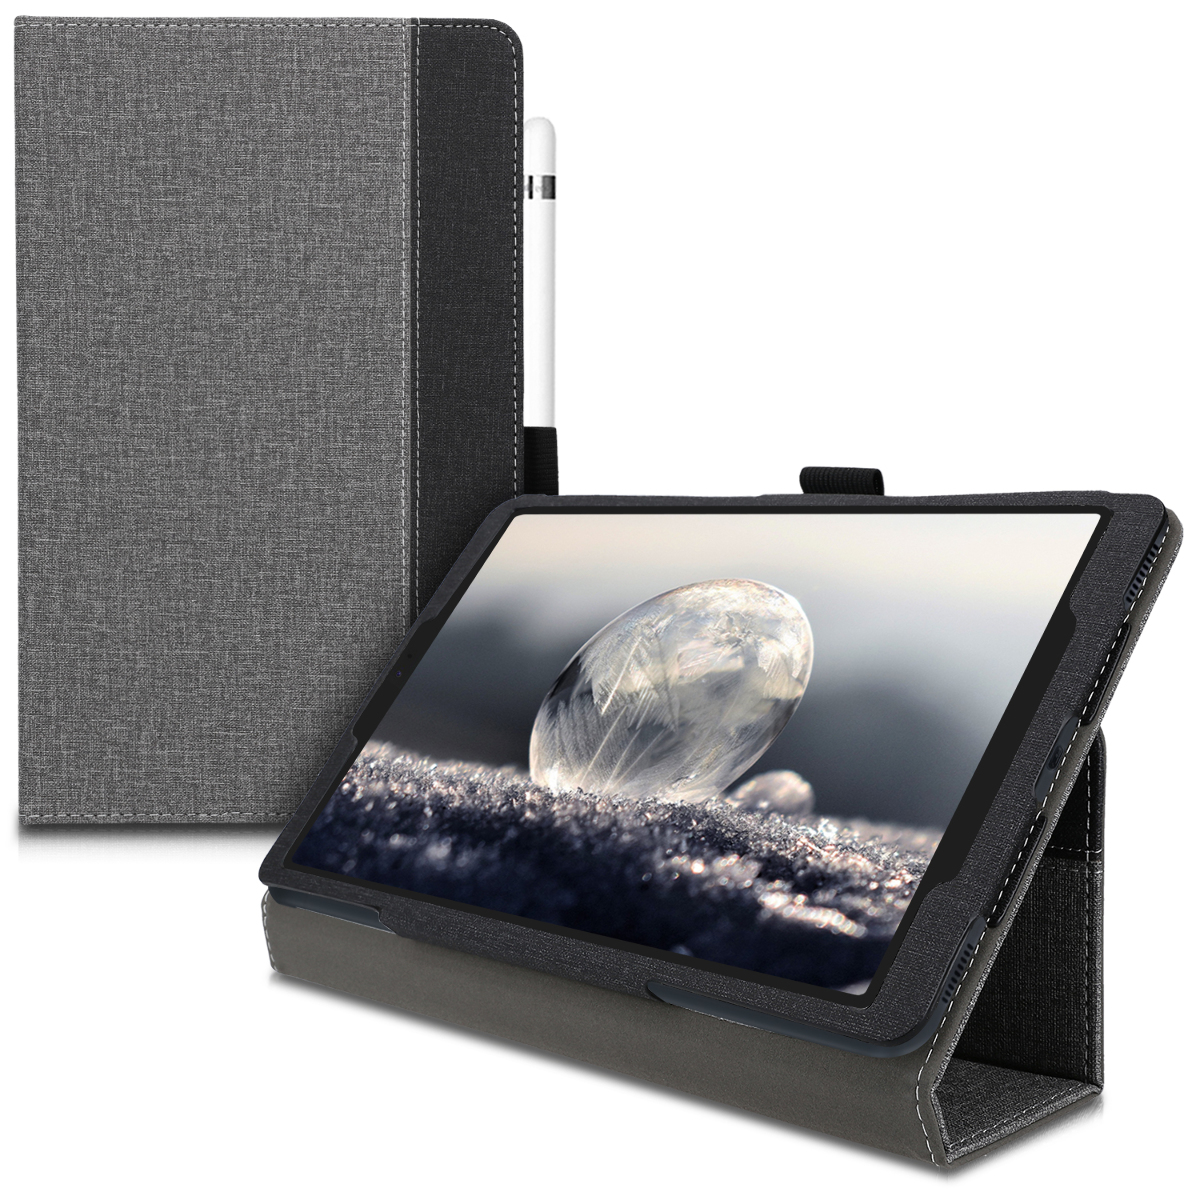 KW Θήκη Samsung Galaxy Tab A 10.1 2019 - PU Leather and Canvas Stand Cover with Stylus Holder - Grey / Black (49944.01)